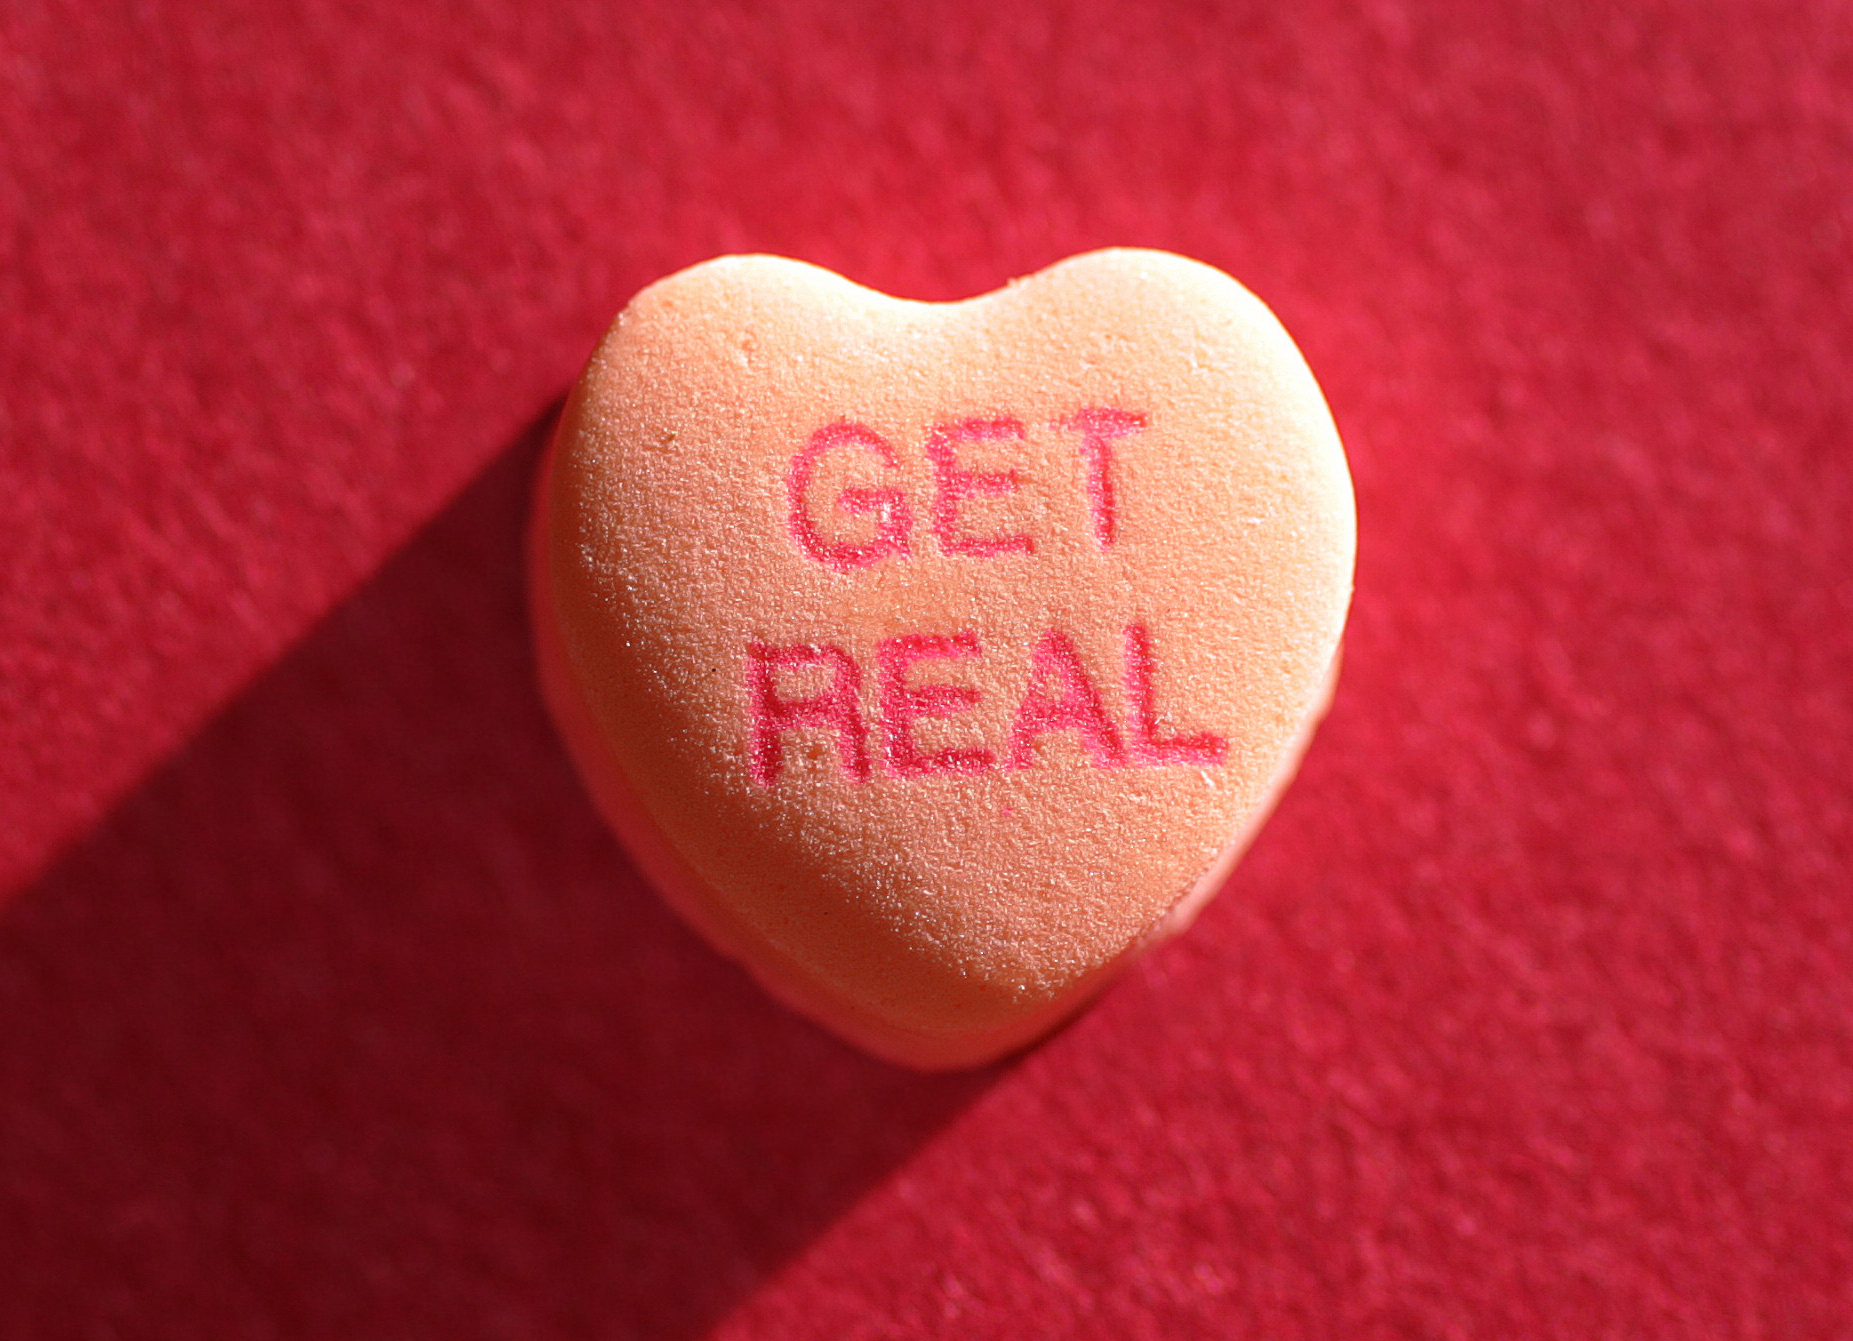 Give These Terrible Valentine's Candies to People You Don't Exactly Love